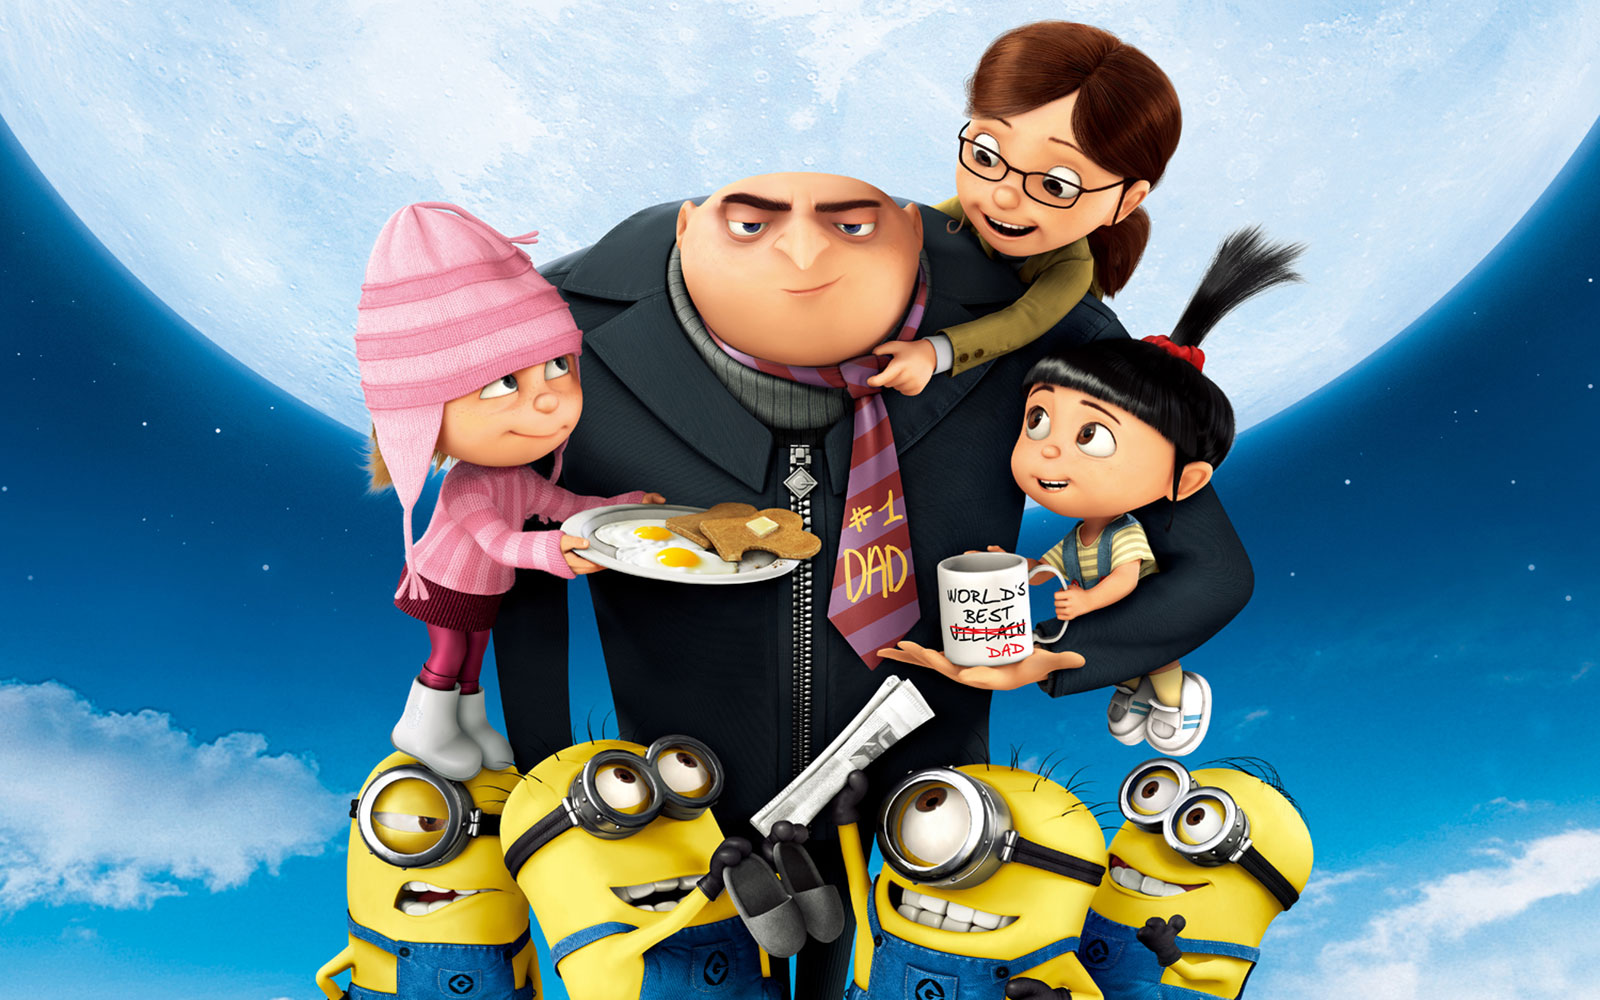 Despicable Me Wallpapers - FilmoFilia